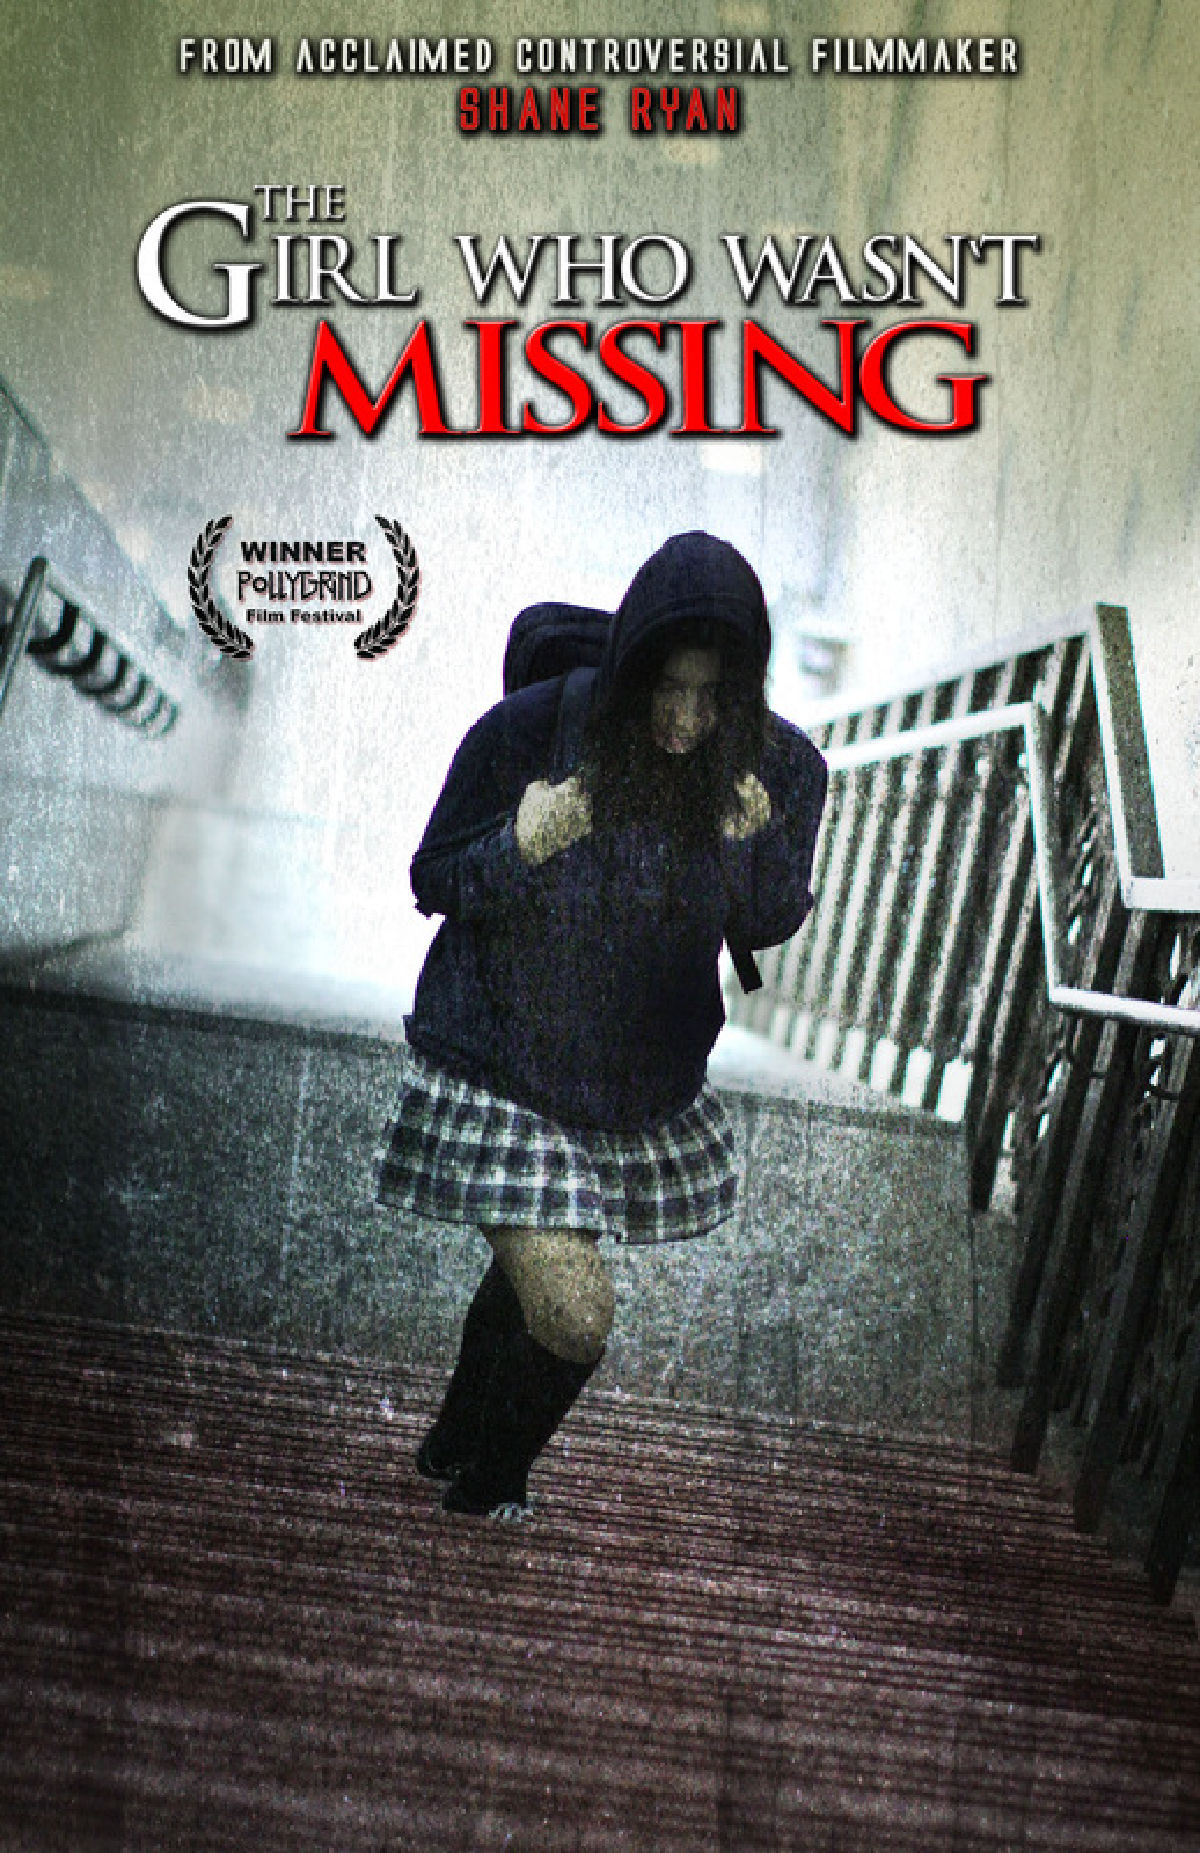 'The Girl Who Wasn't Missing' movie poster